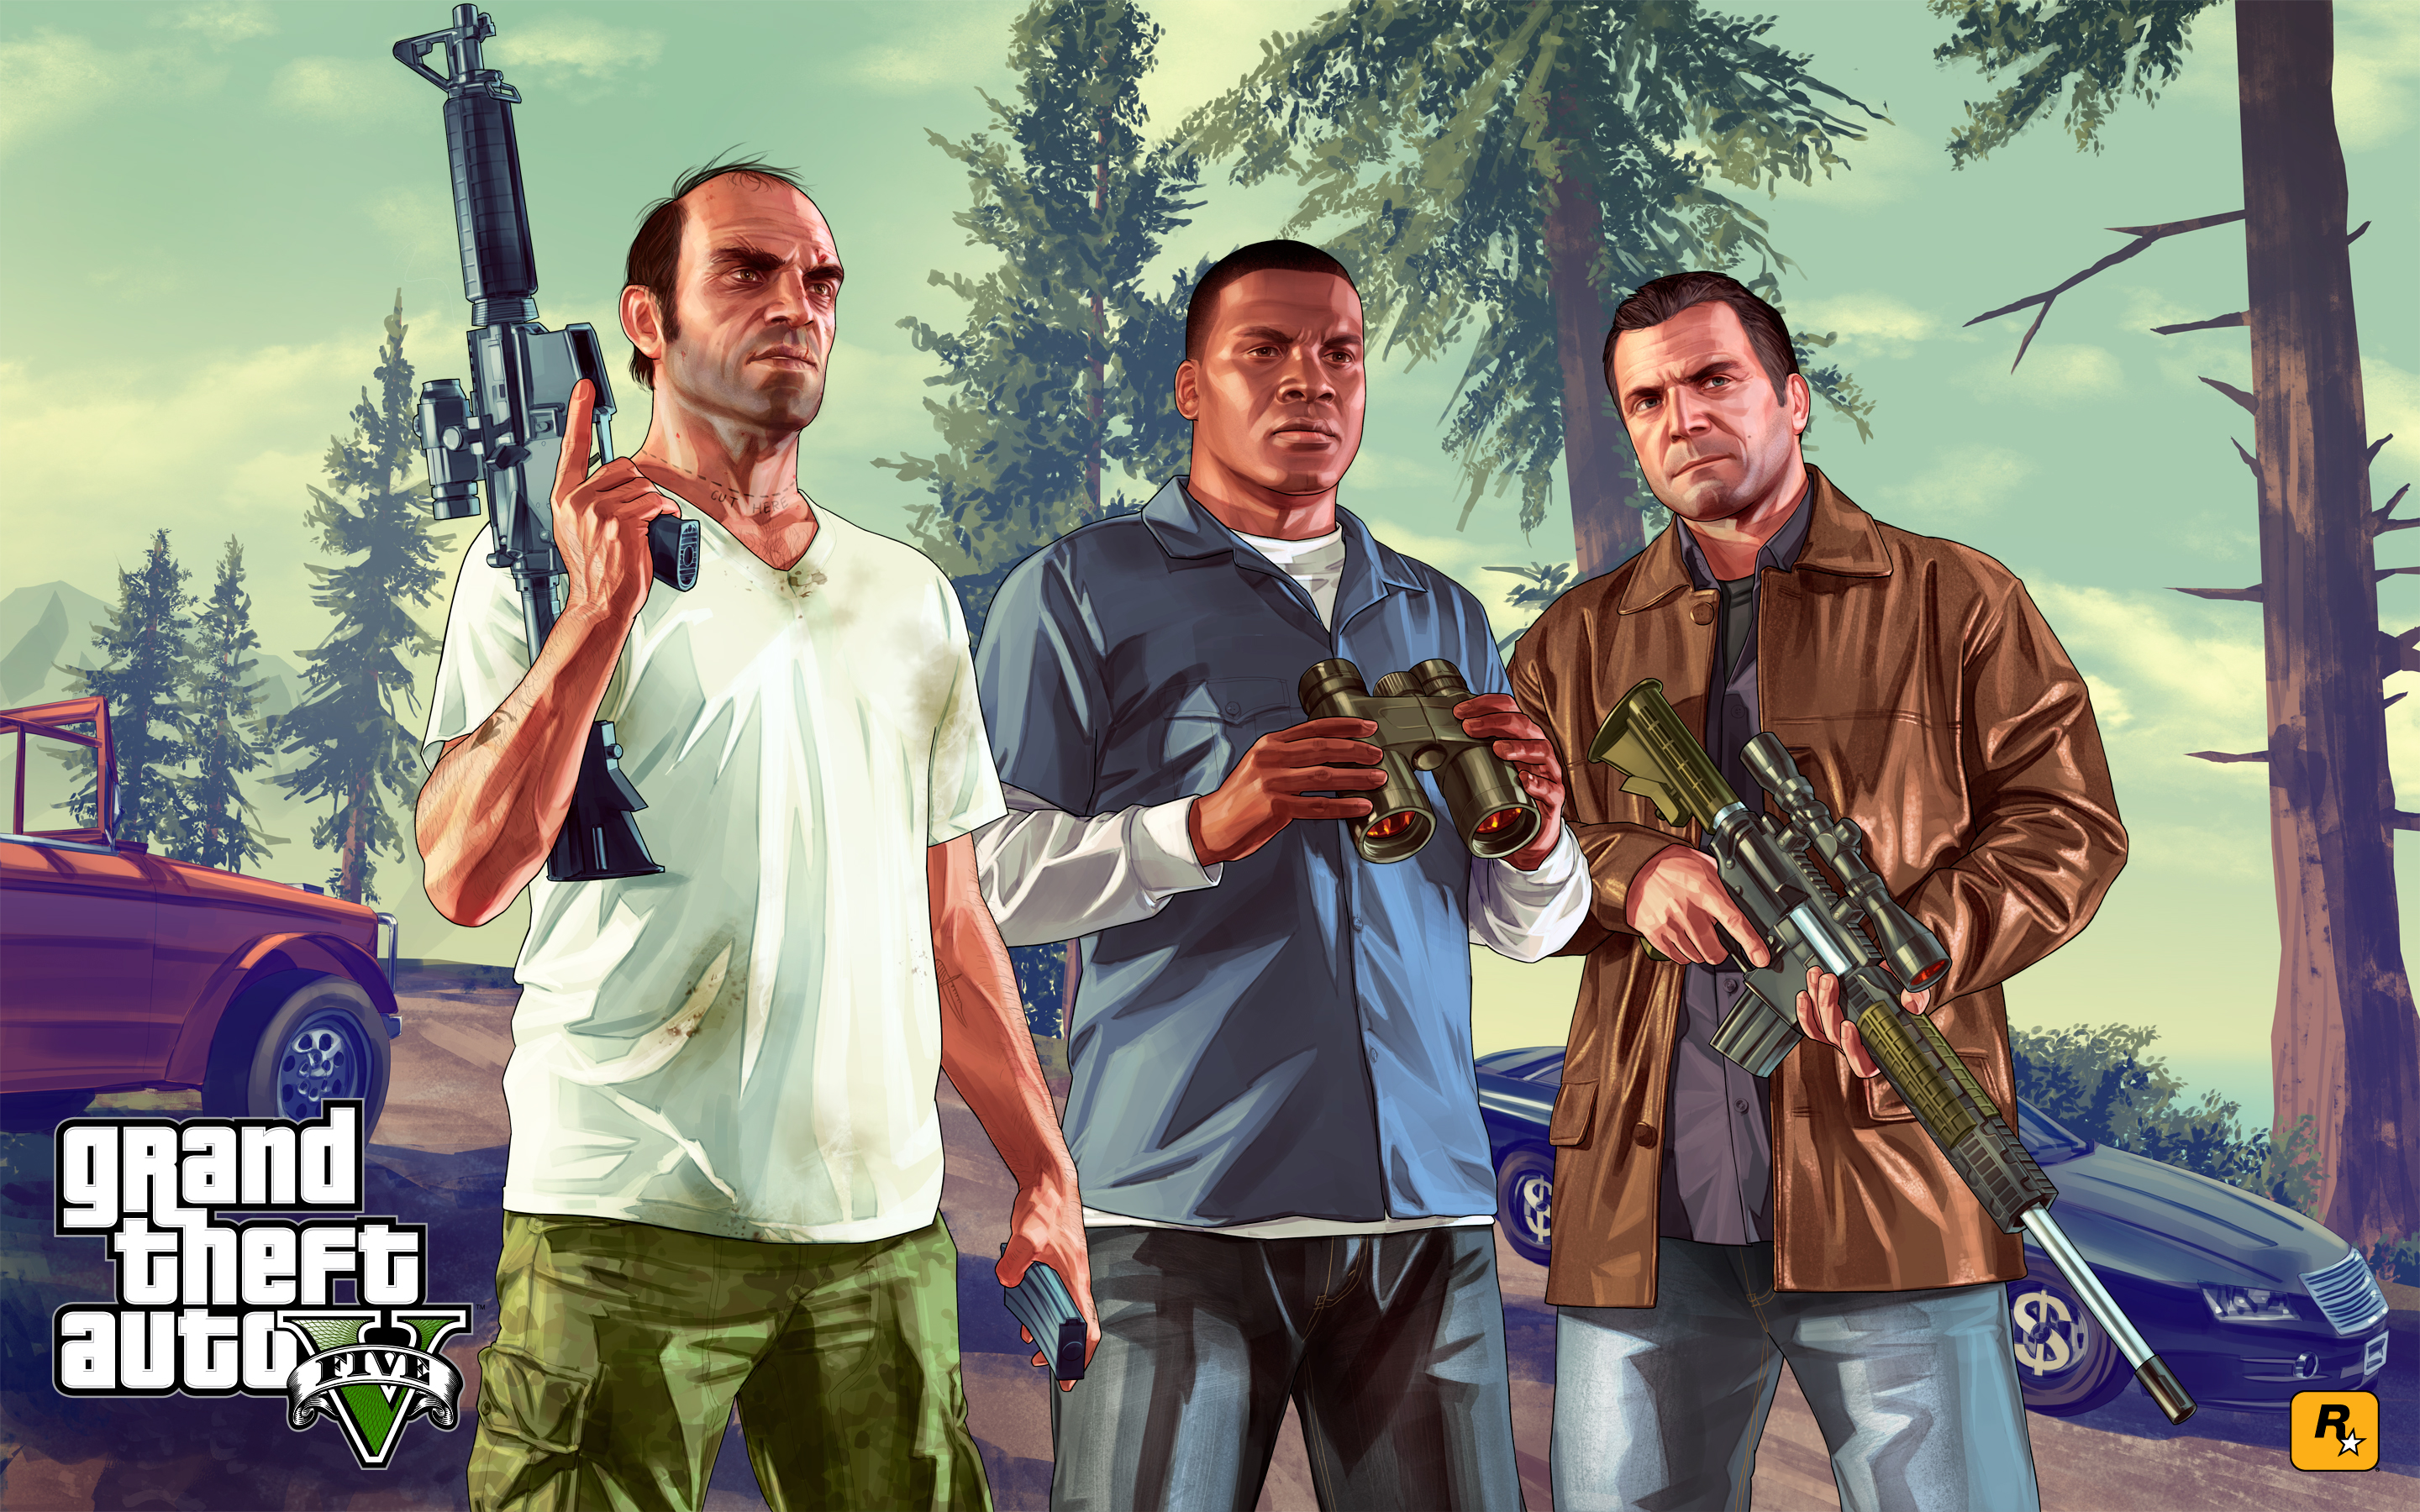 Gta 5 Full HD Wallpapers